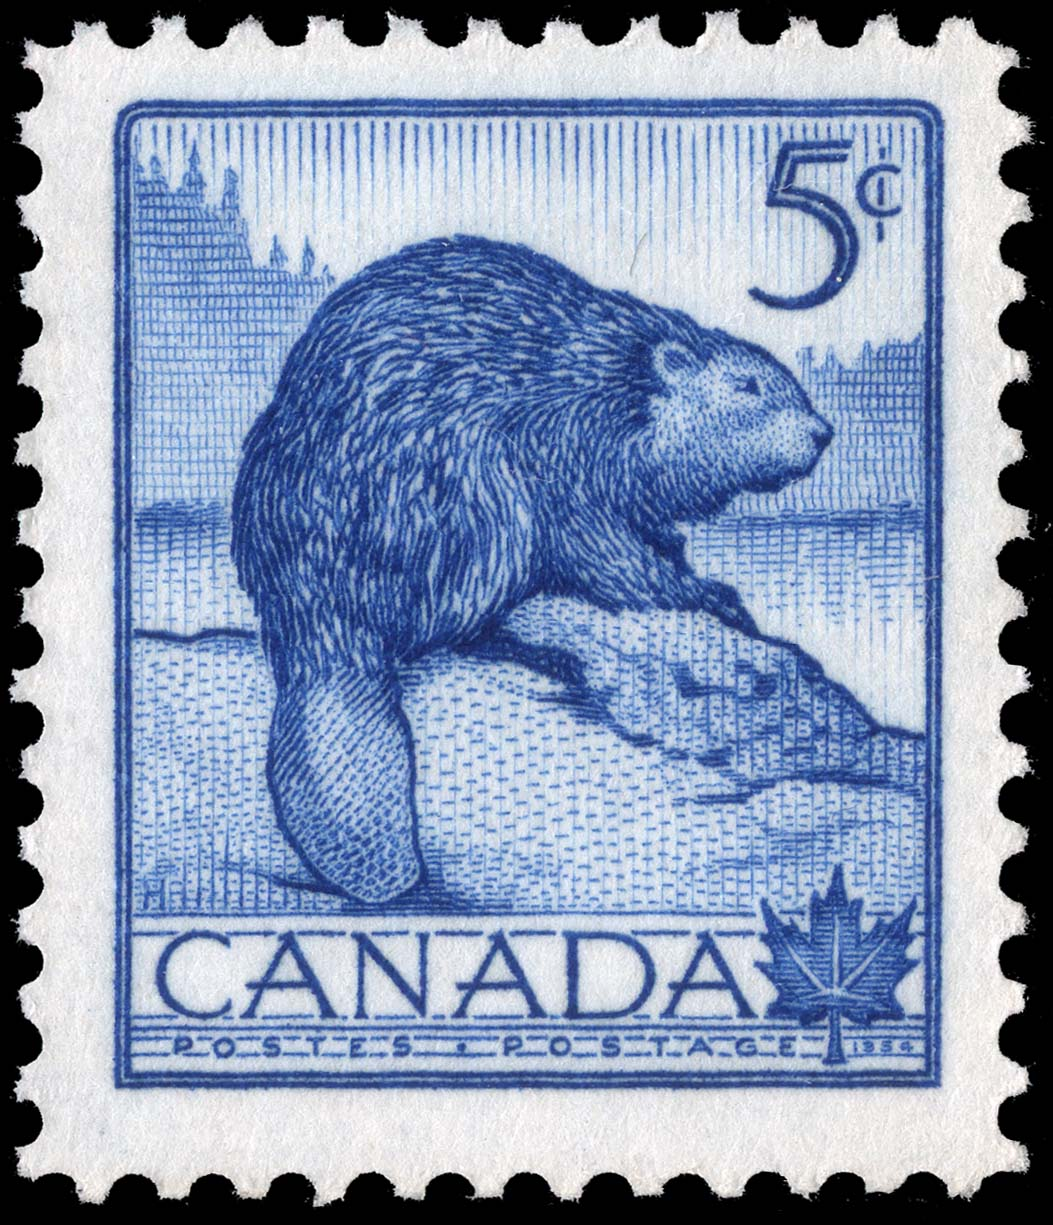 Beaver Canada Postage Stamp | National Wildlife